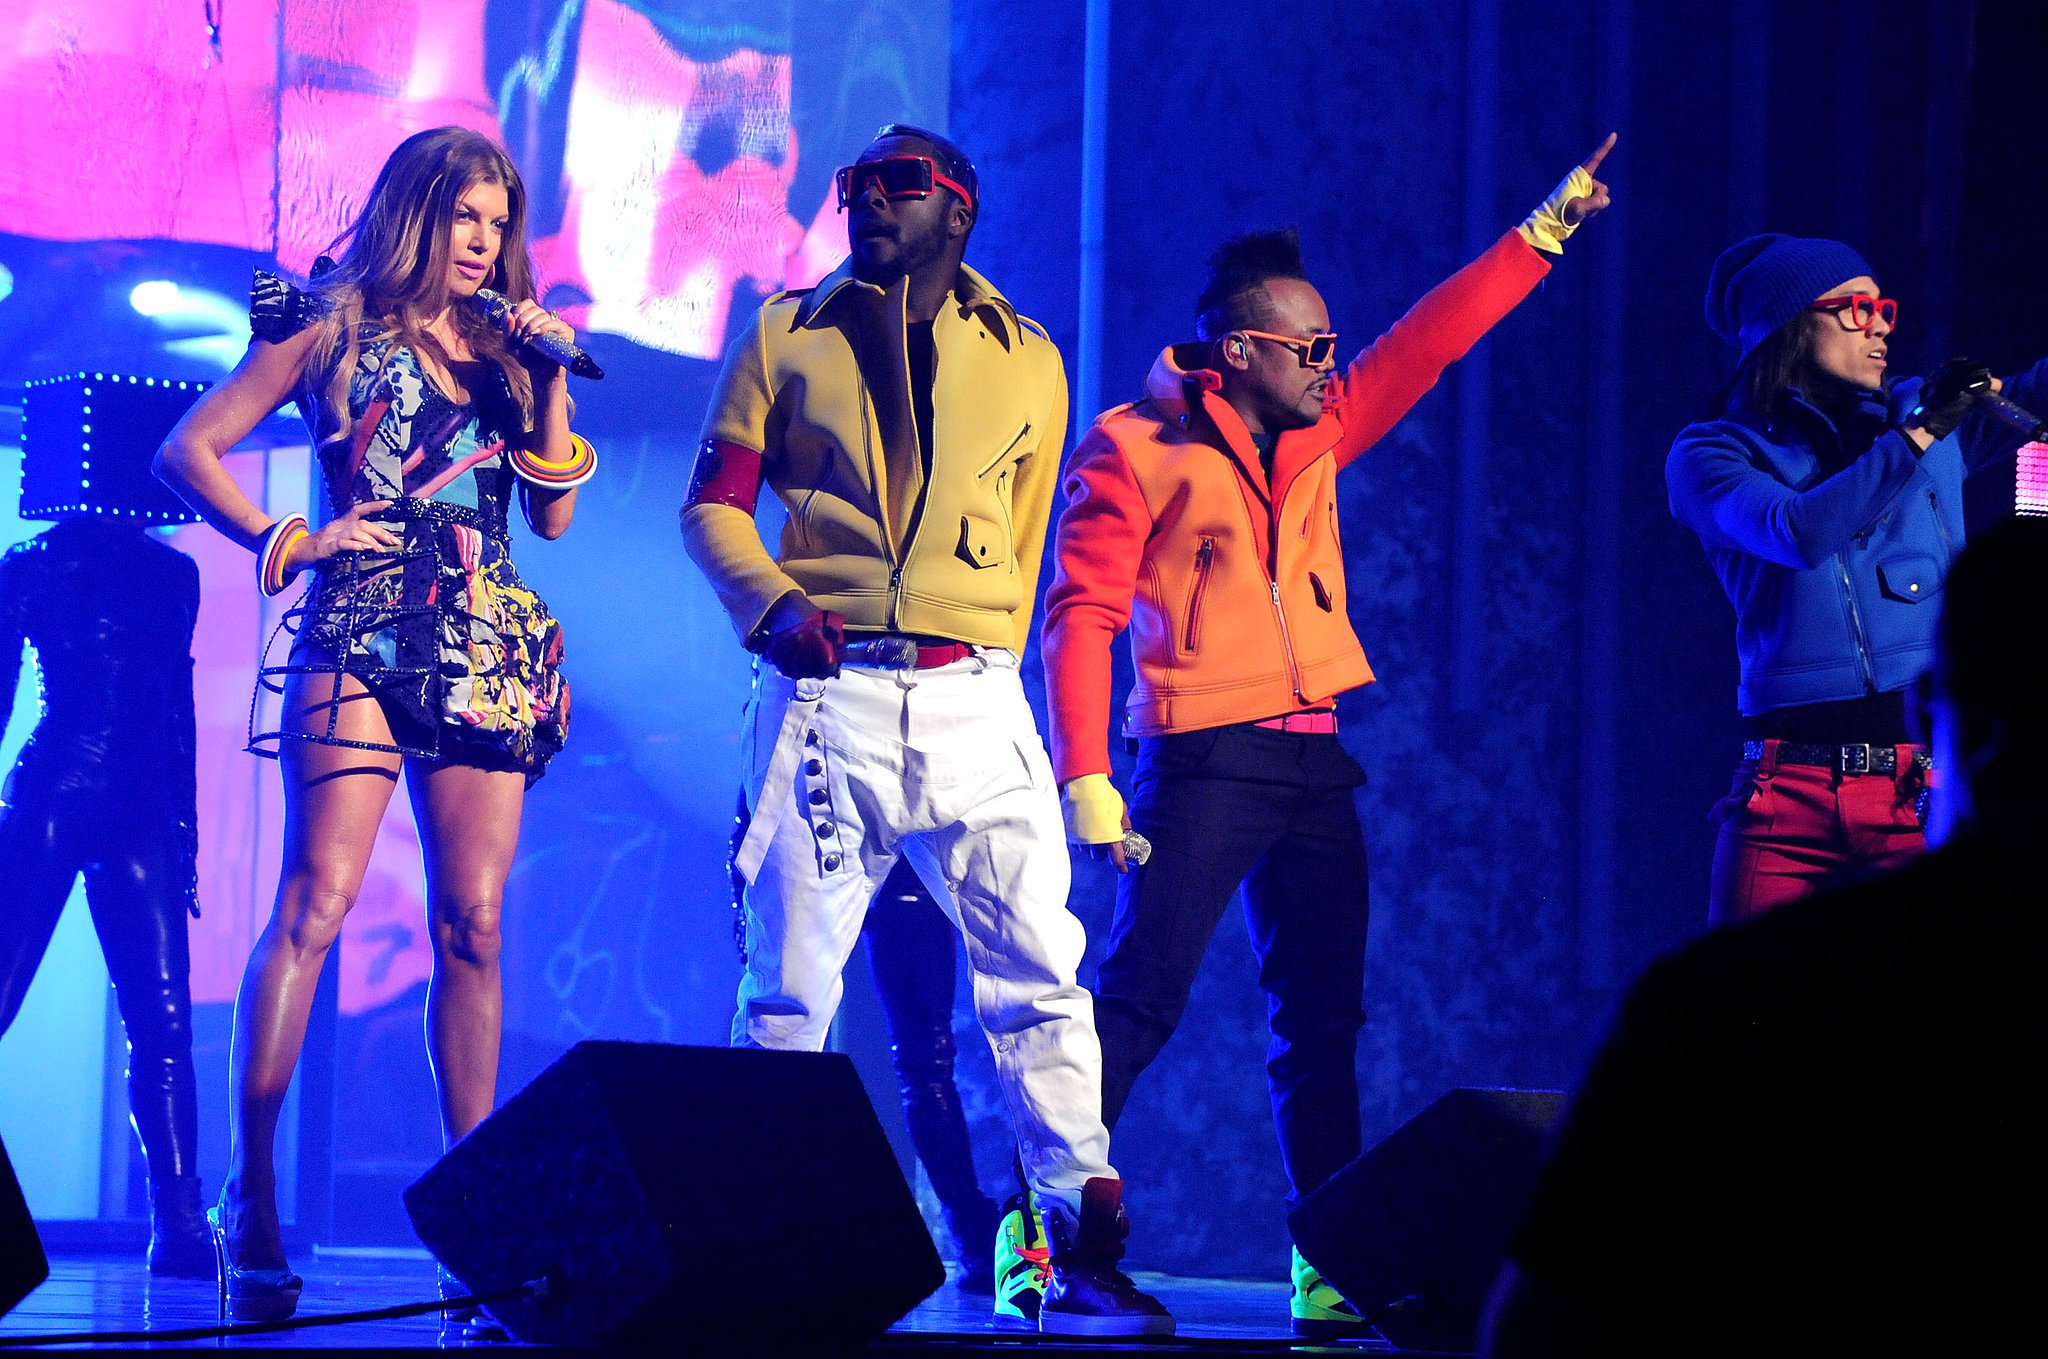 The Black Eyed Peas were cool and colorful during their 2010 performance.